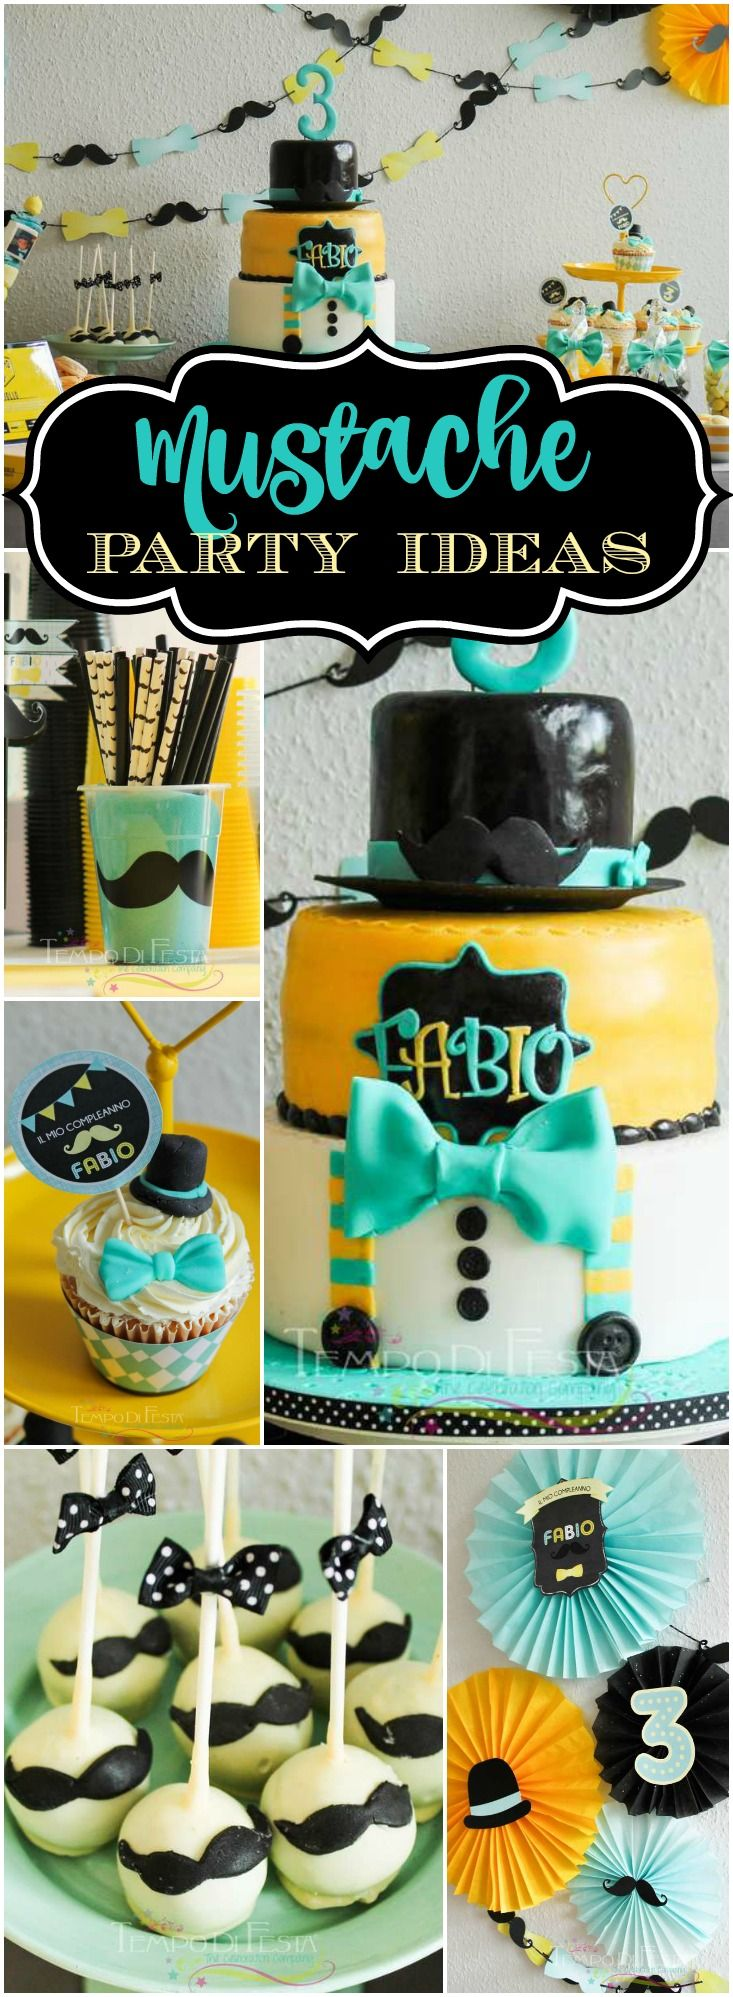 Check Out This Mustache Little Man Party In A Great Color Combo See More